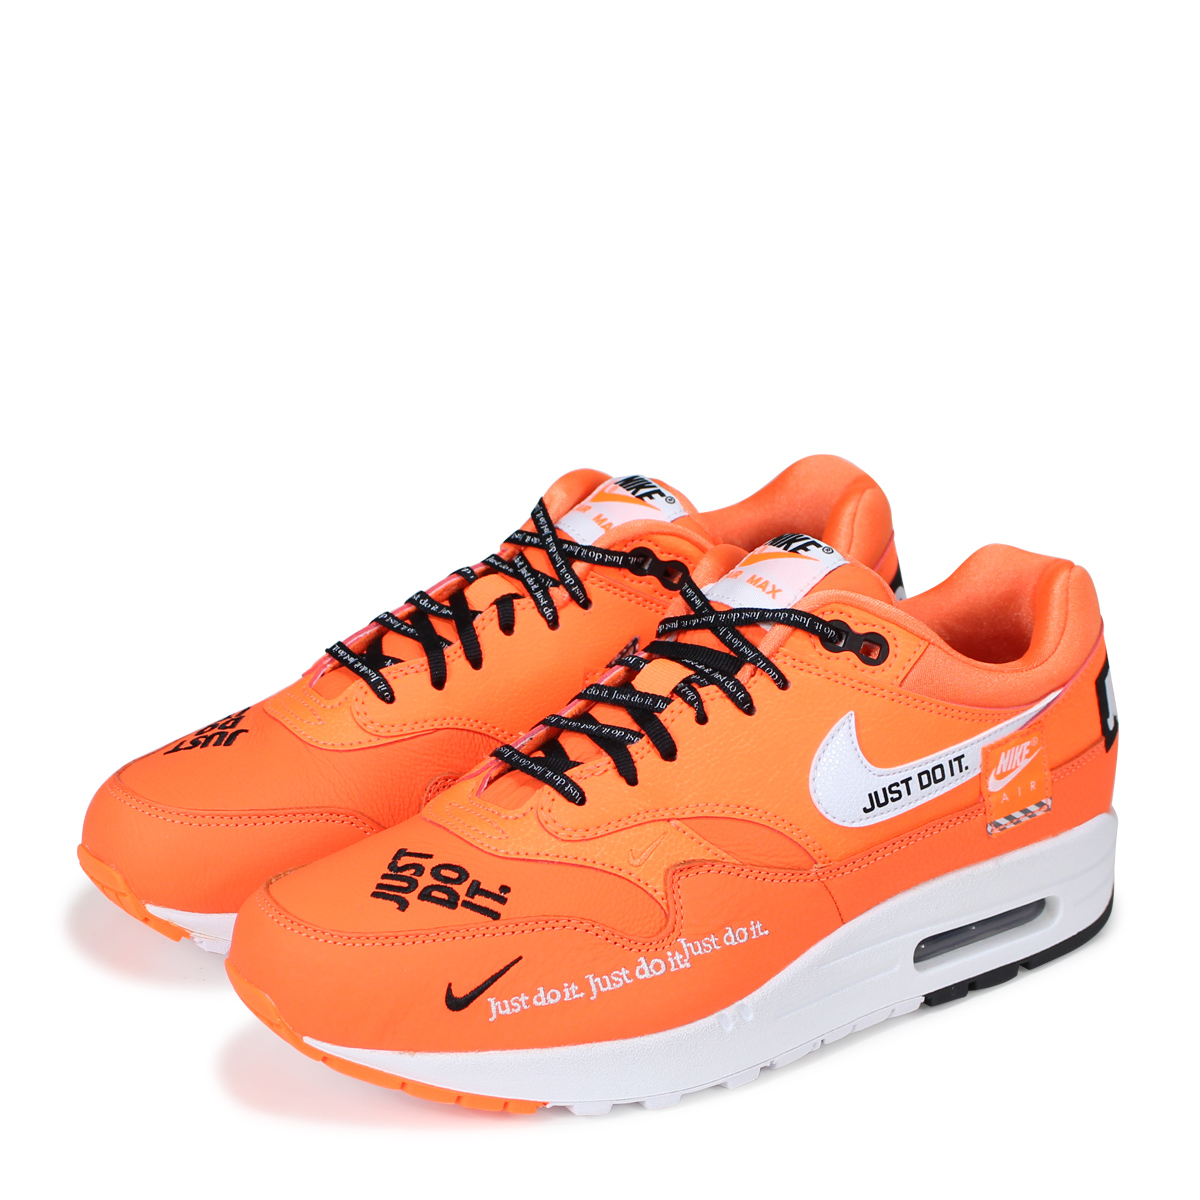 reputable site bfa56 bf0c8 Nike NIKE Air Max 1 lady's men's sneakers WMNS AIR MAX 1 LX 917,691-800  orange [195]